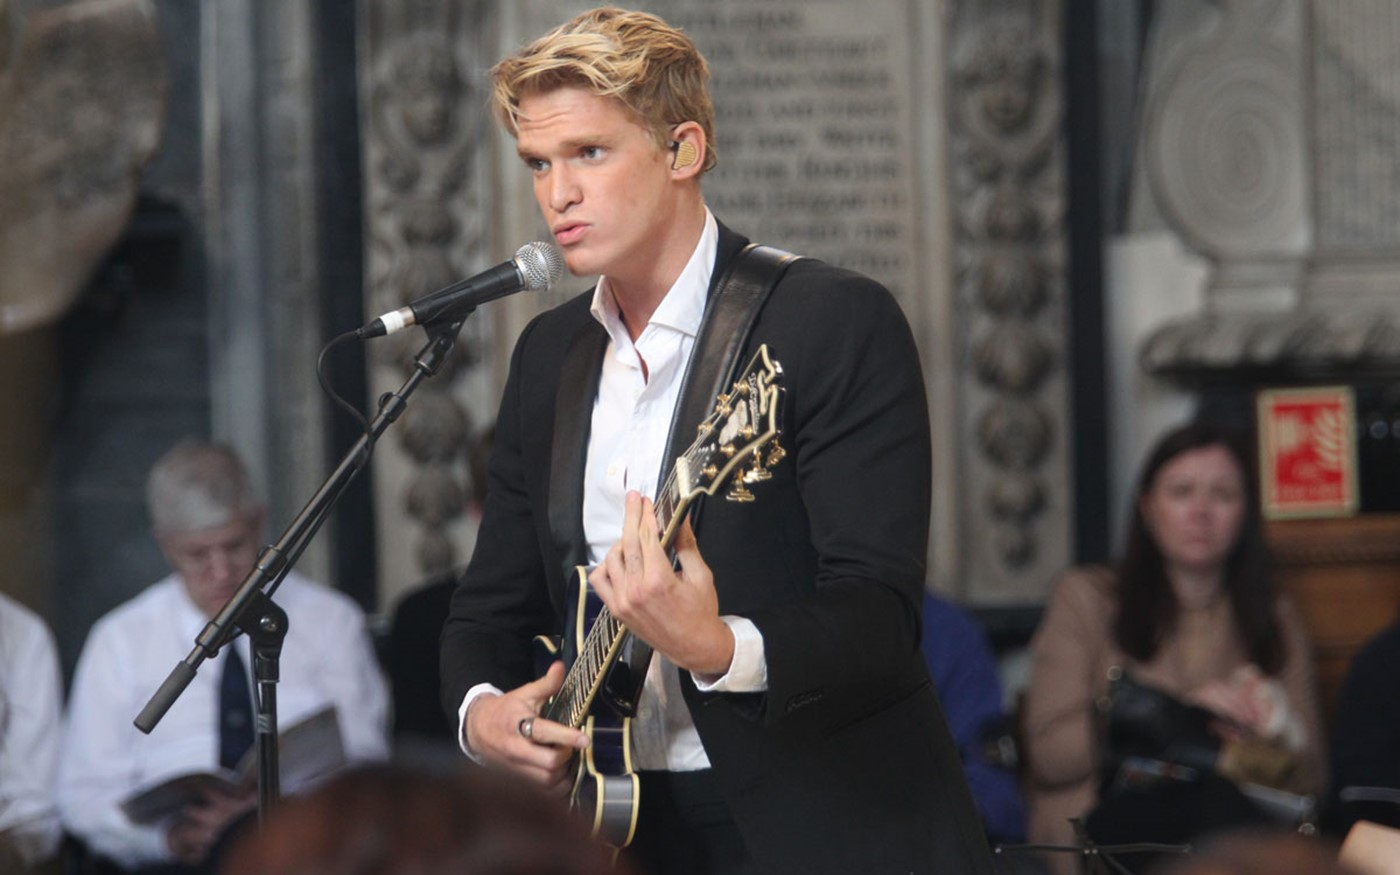 Cody Simpson performs What a Wonderful World